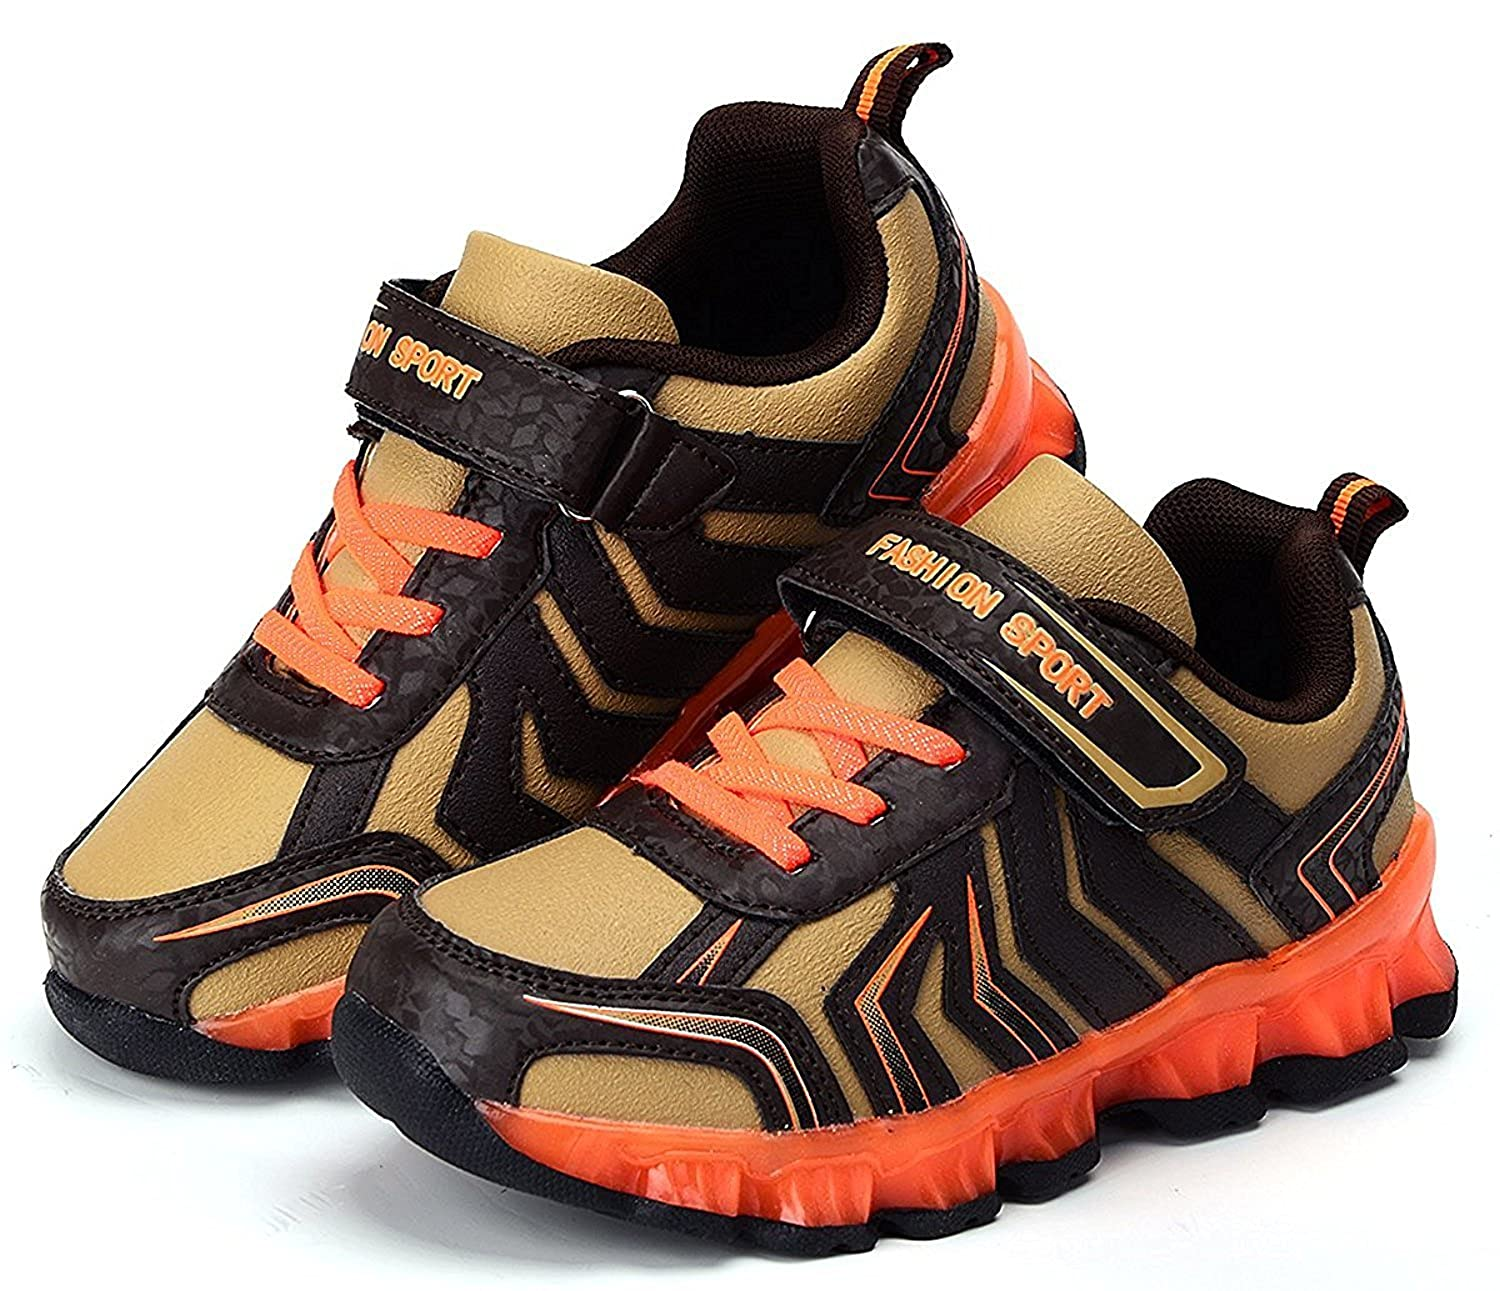 FG21ds21g Boys Girls USB Charger Led Light Shoes Nets Sneakers Unisex Sportswear Led Kids Shoes Brown 27 EU//10 M US Toddler